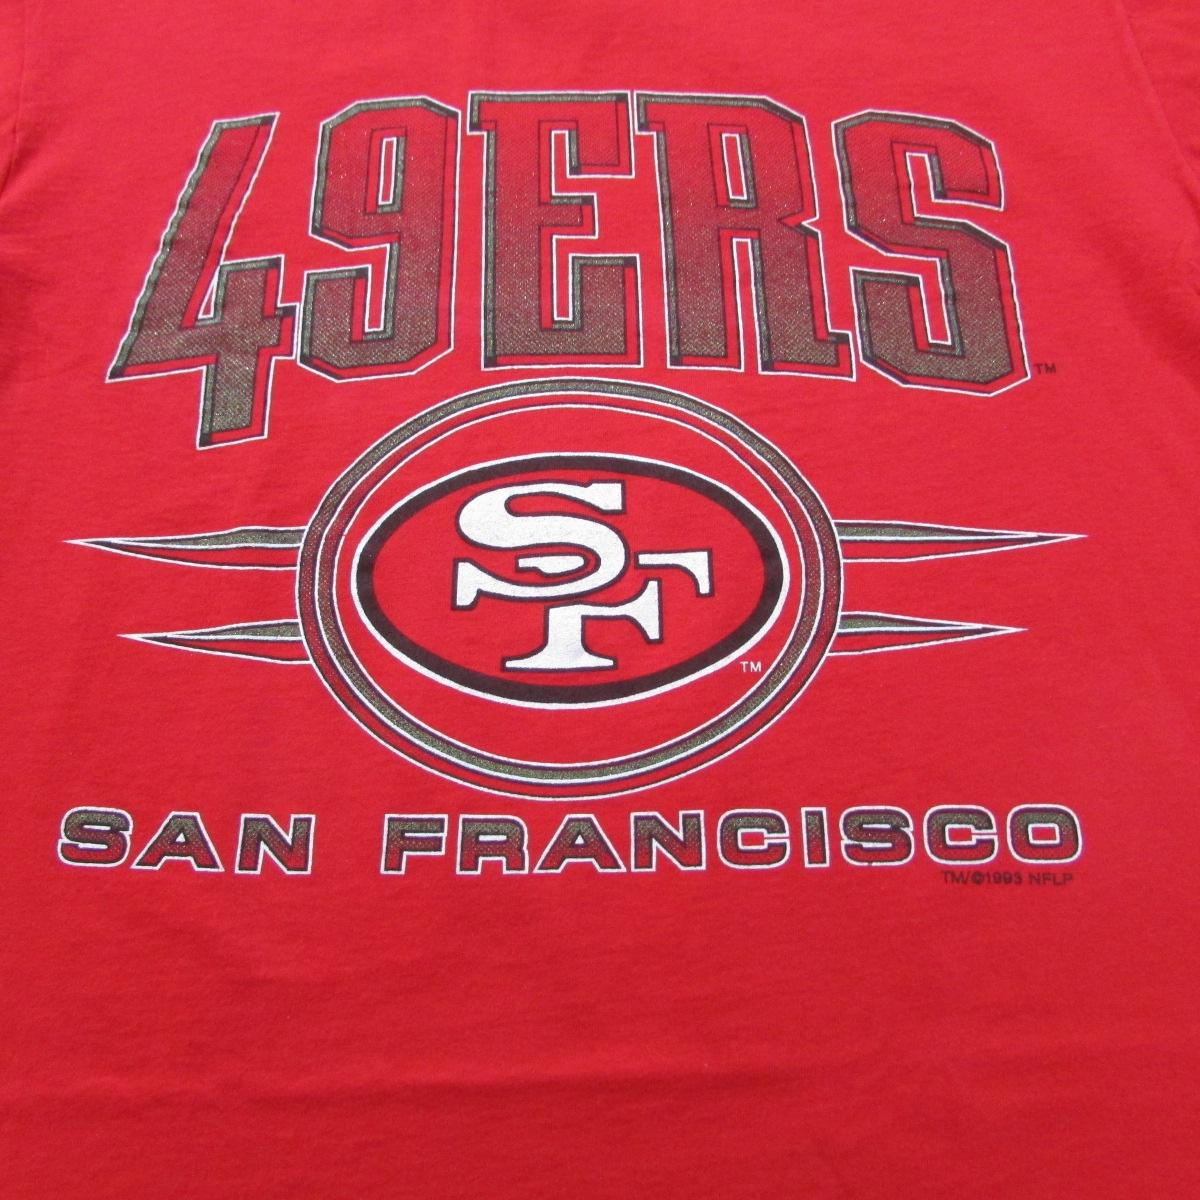 1993 San Francisco 49ers Double Tee Football T-Shirt Competitor Sz L